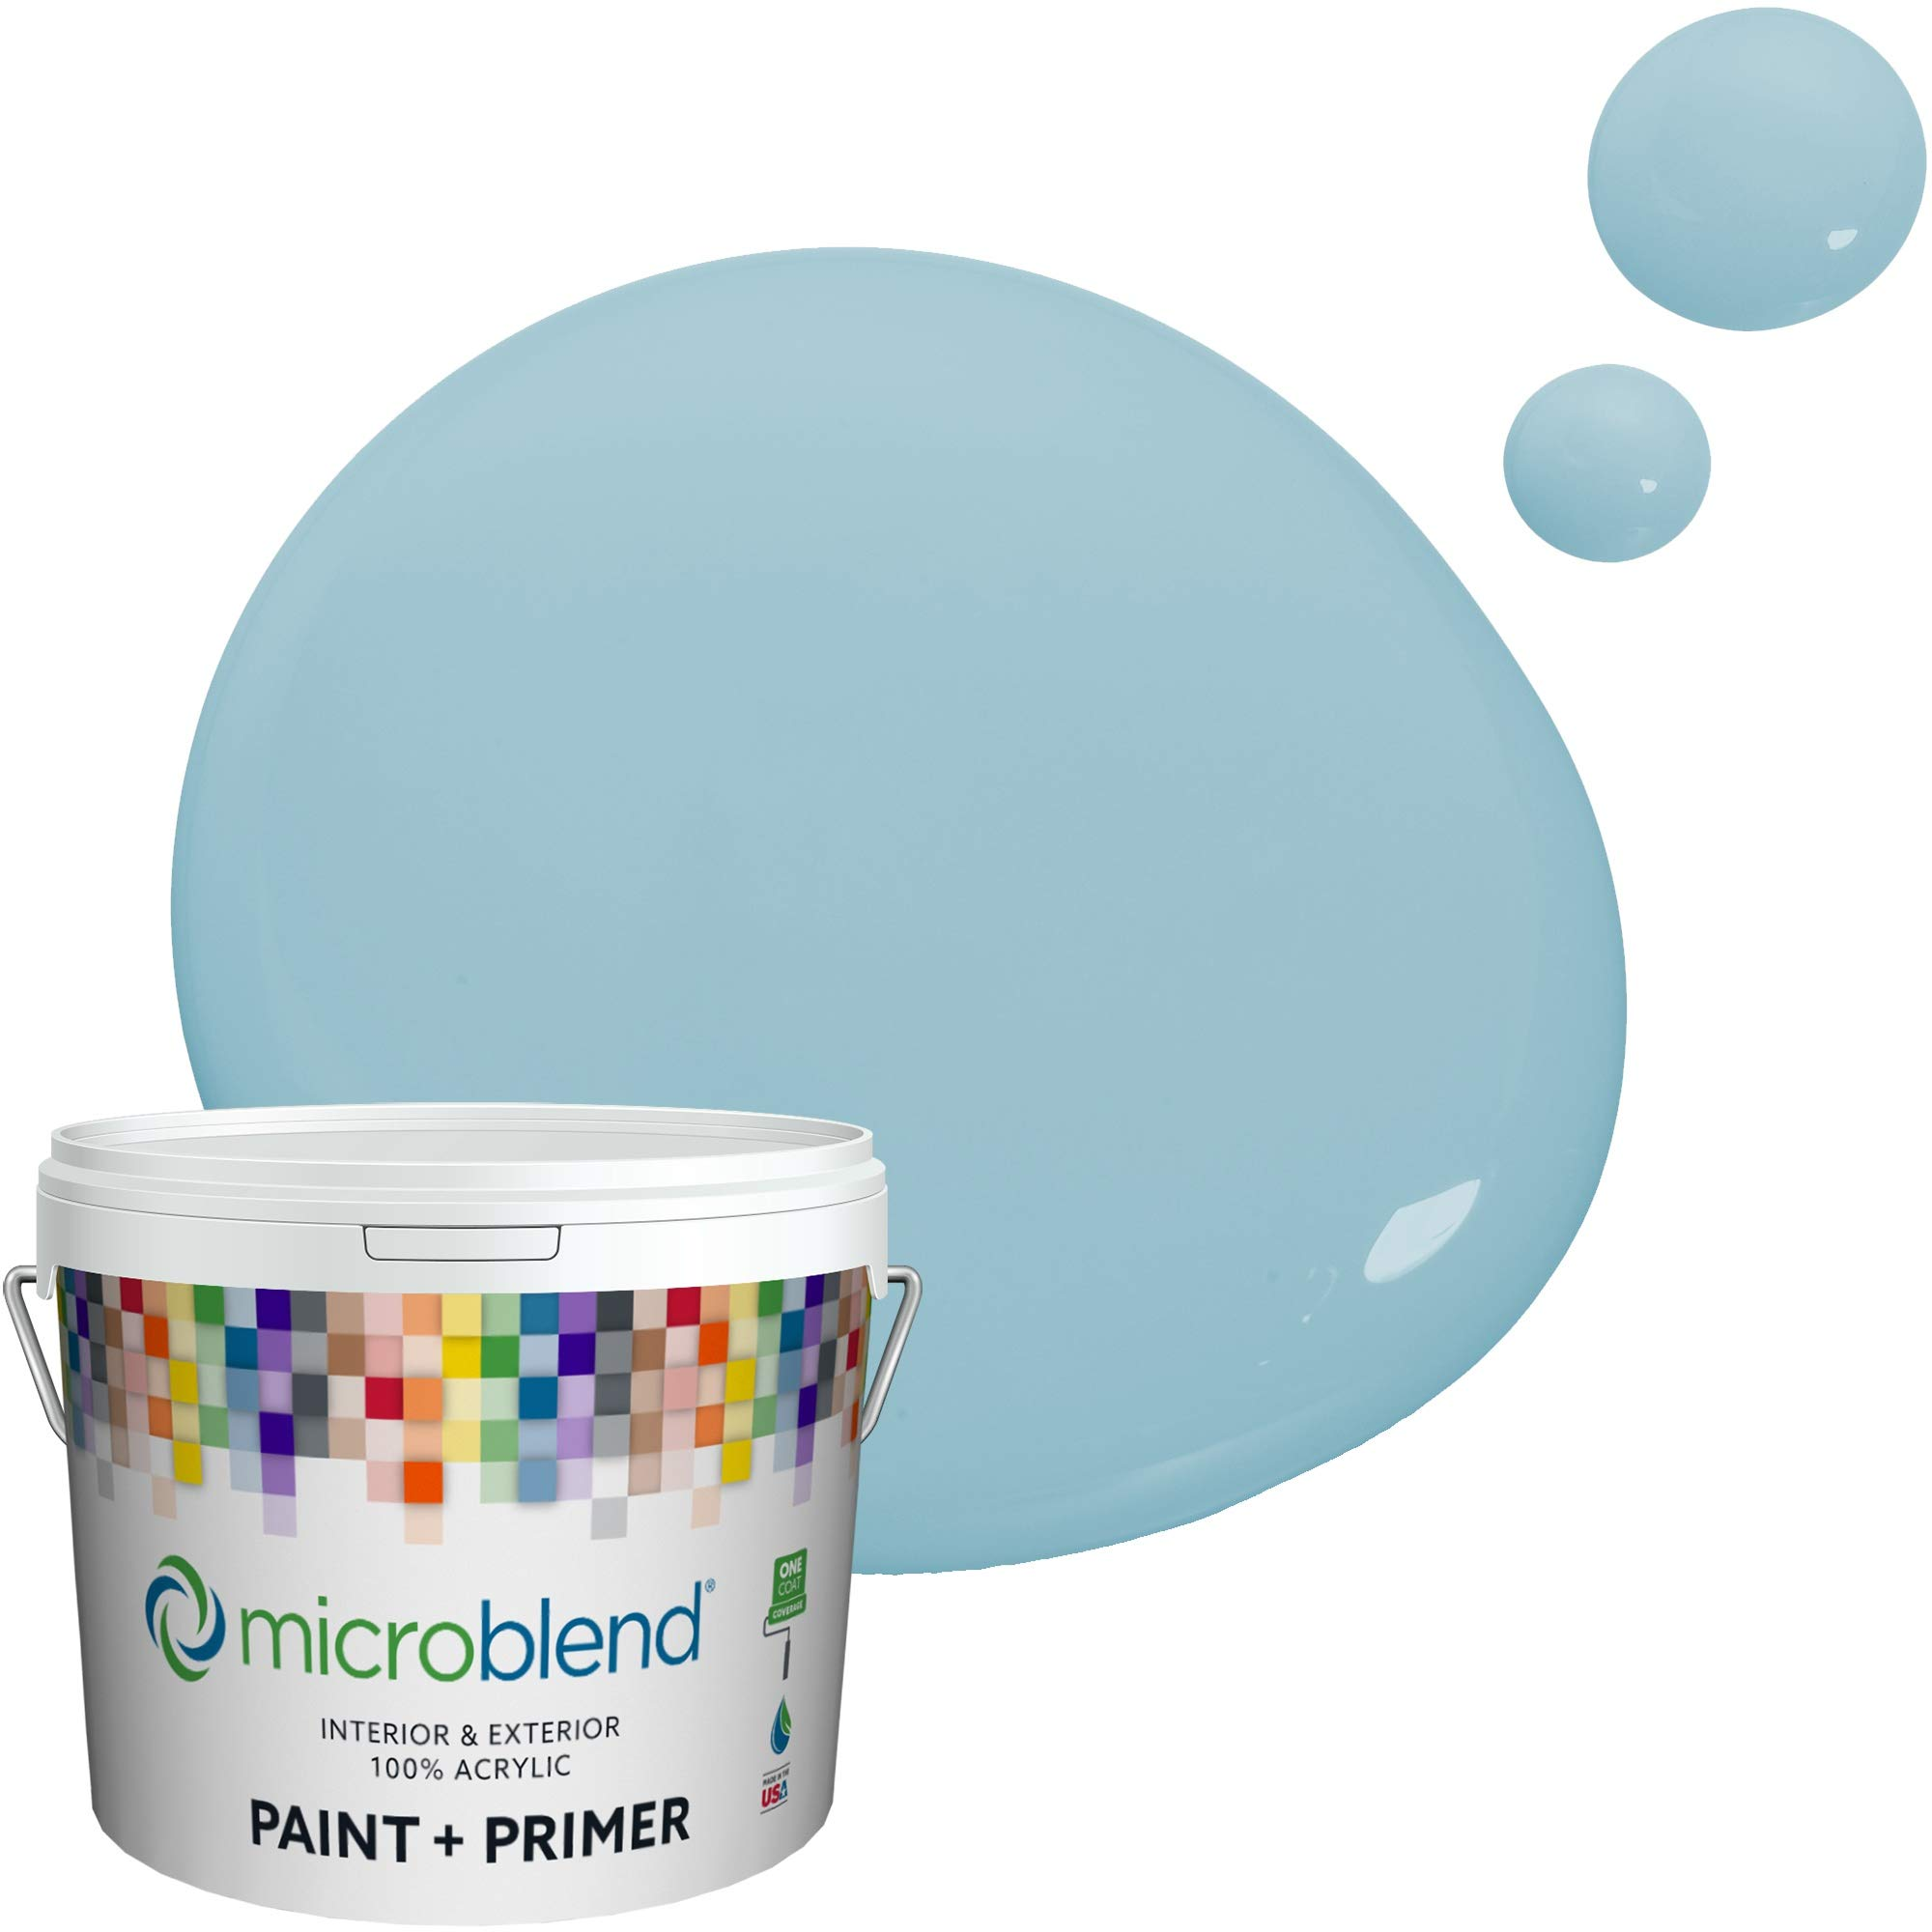 MicroBlend Interior Paint + Primer, Smooth Blue, Eggshell Sheen, 1 Gallon, Custom Made, Premium Quality One Coat Hide & Washable Paint (73221-2-M0366B3)